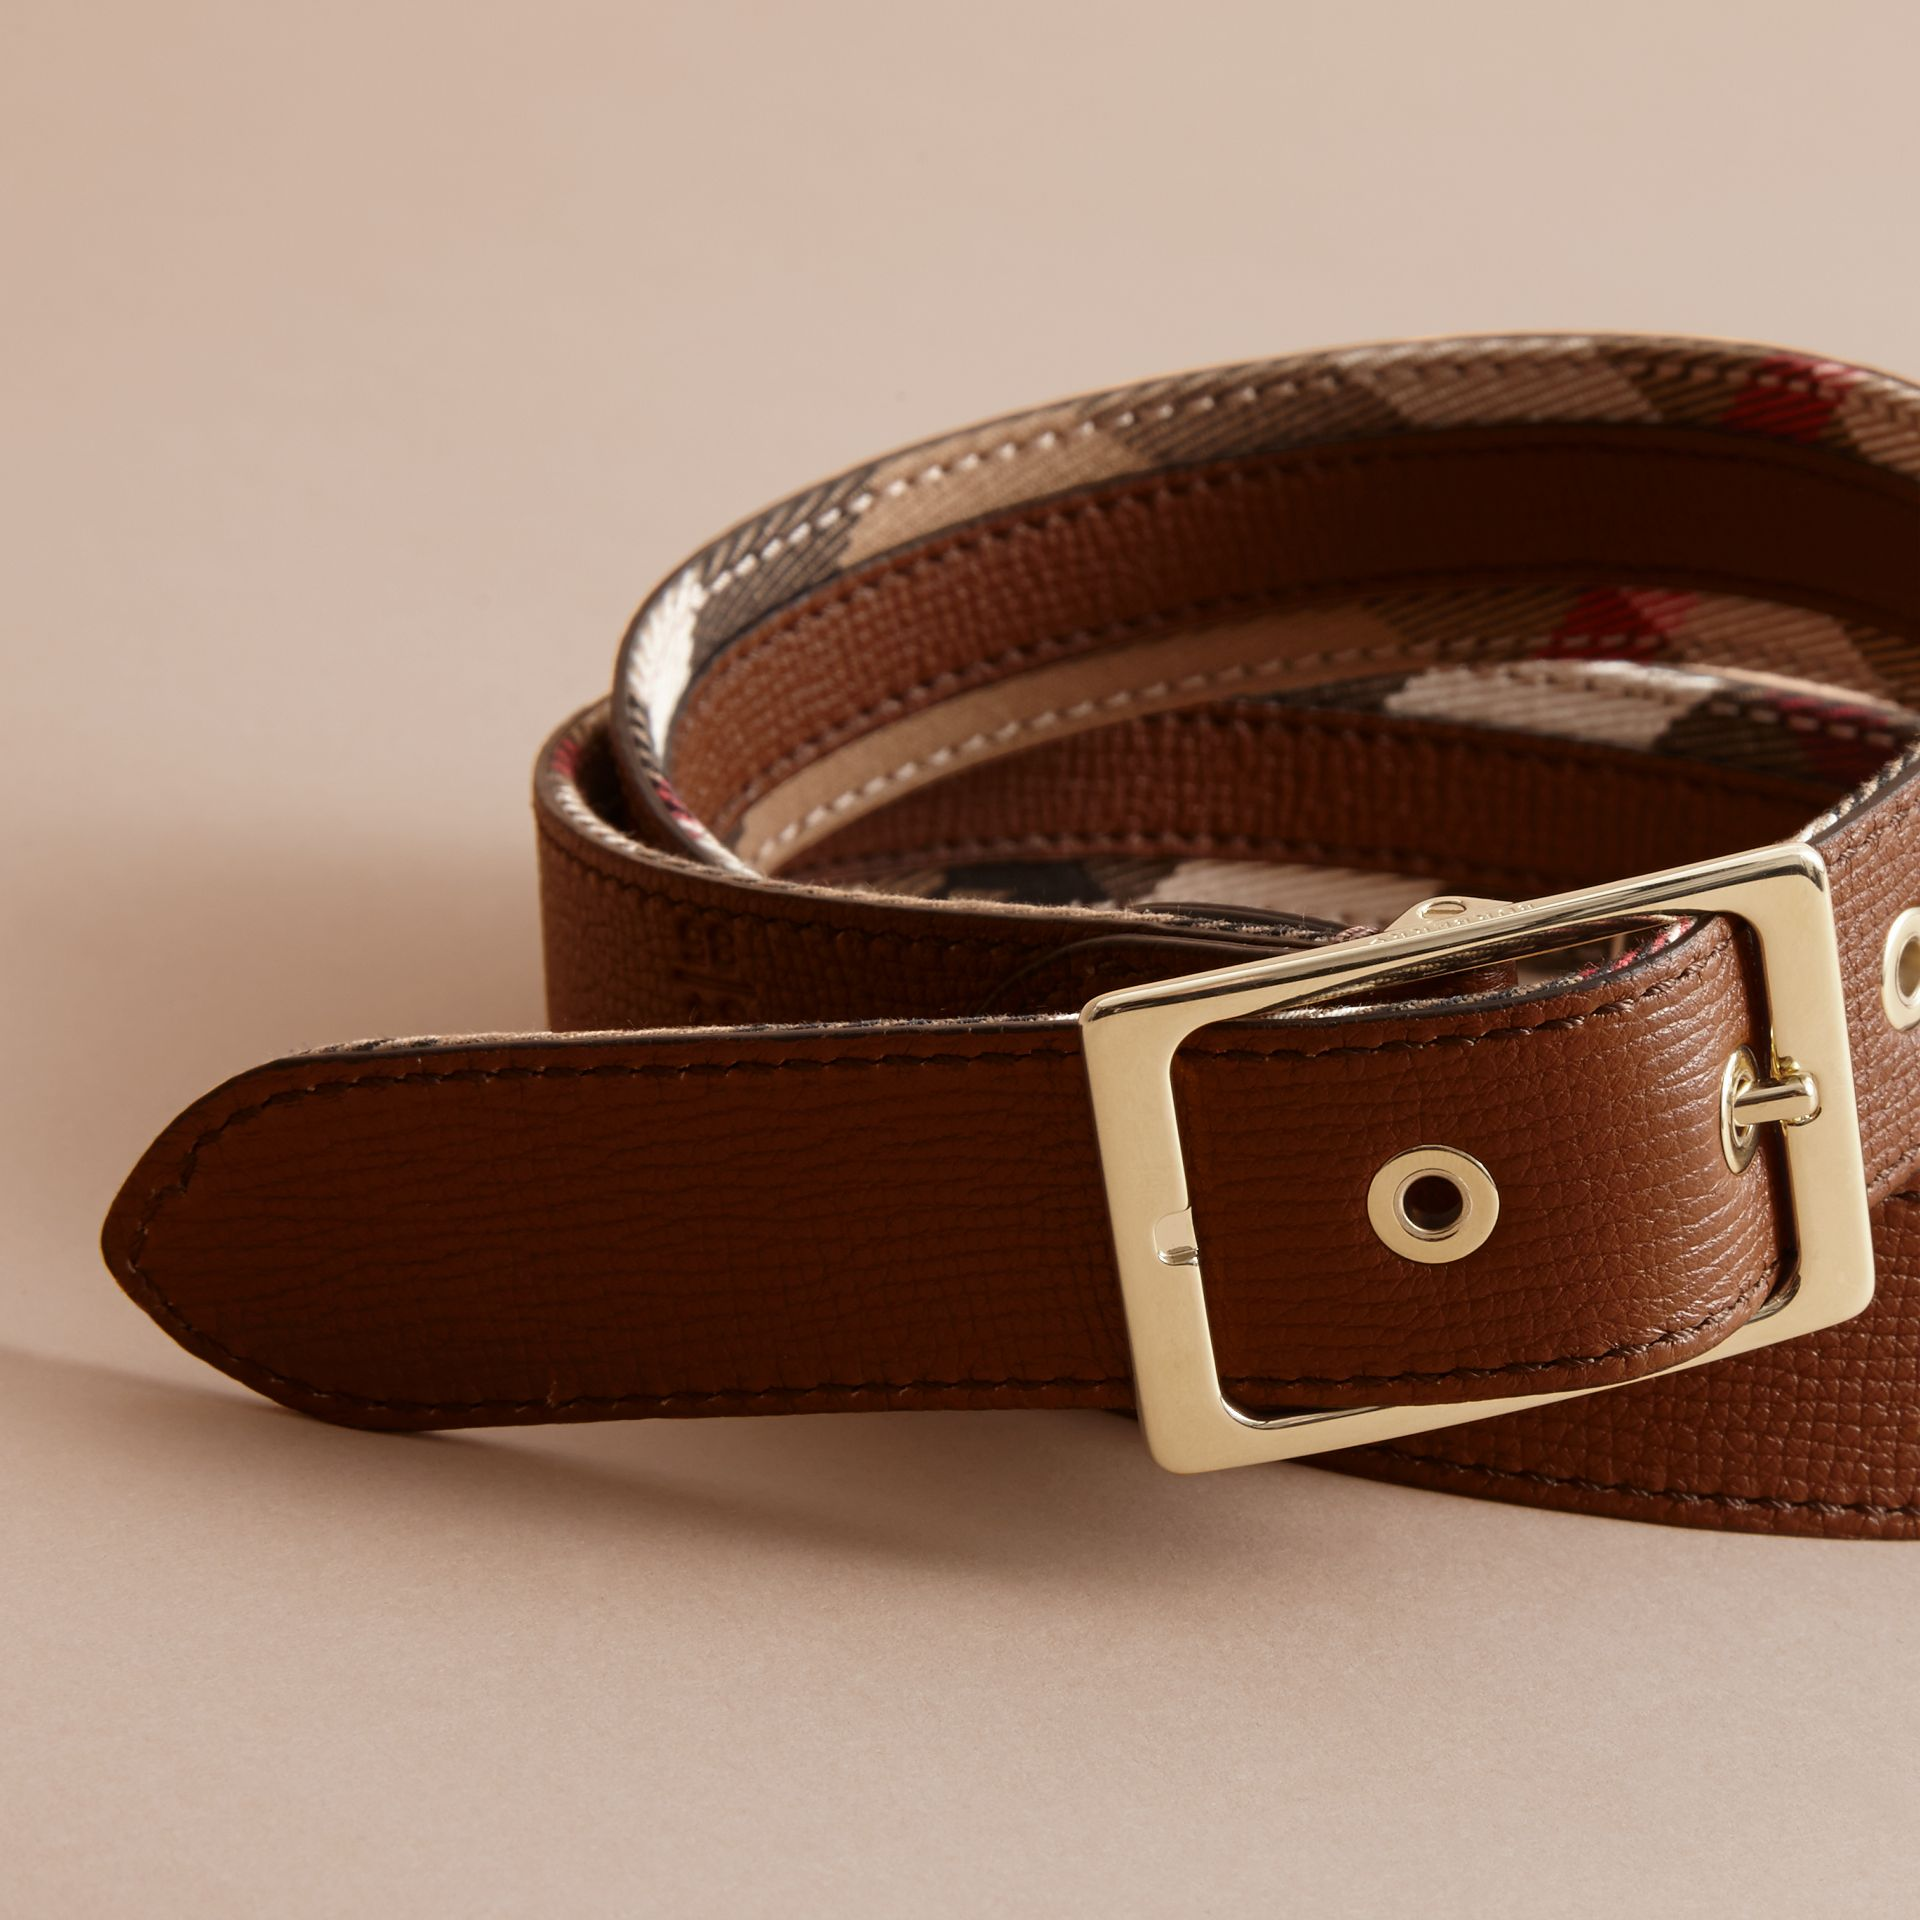 House Check and Grainy Leather Belt in Camel/tan - Women | Burberry - gallery image 4